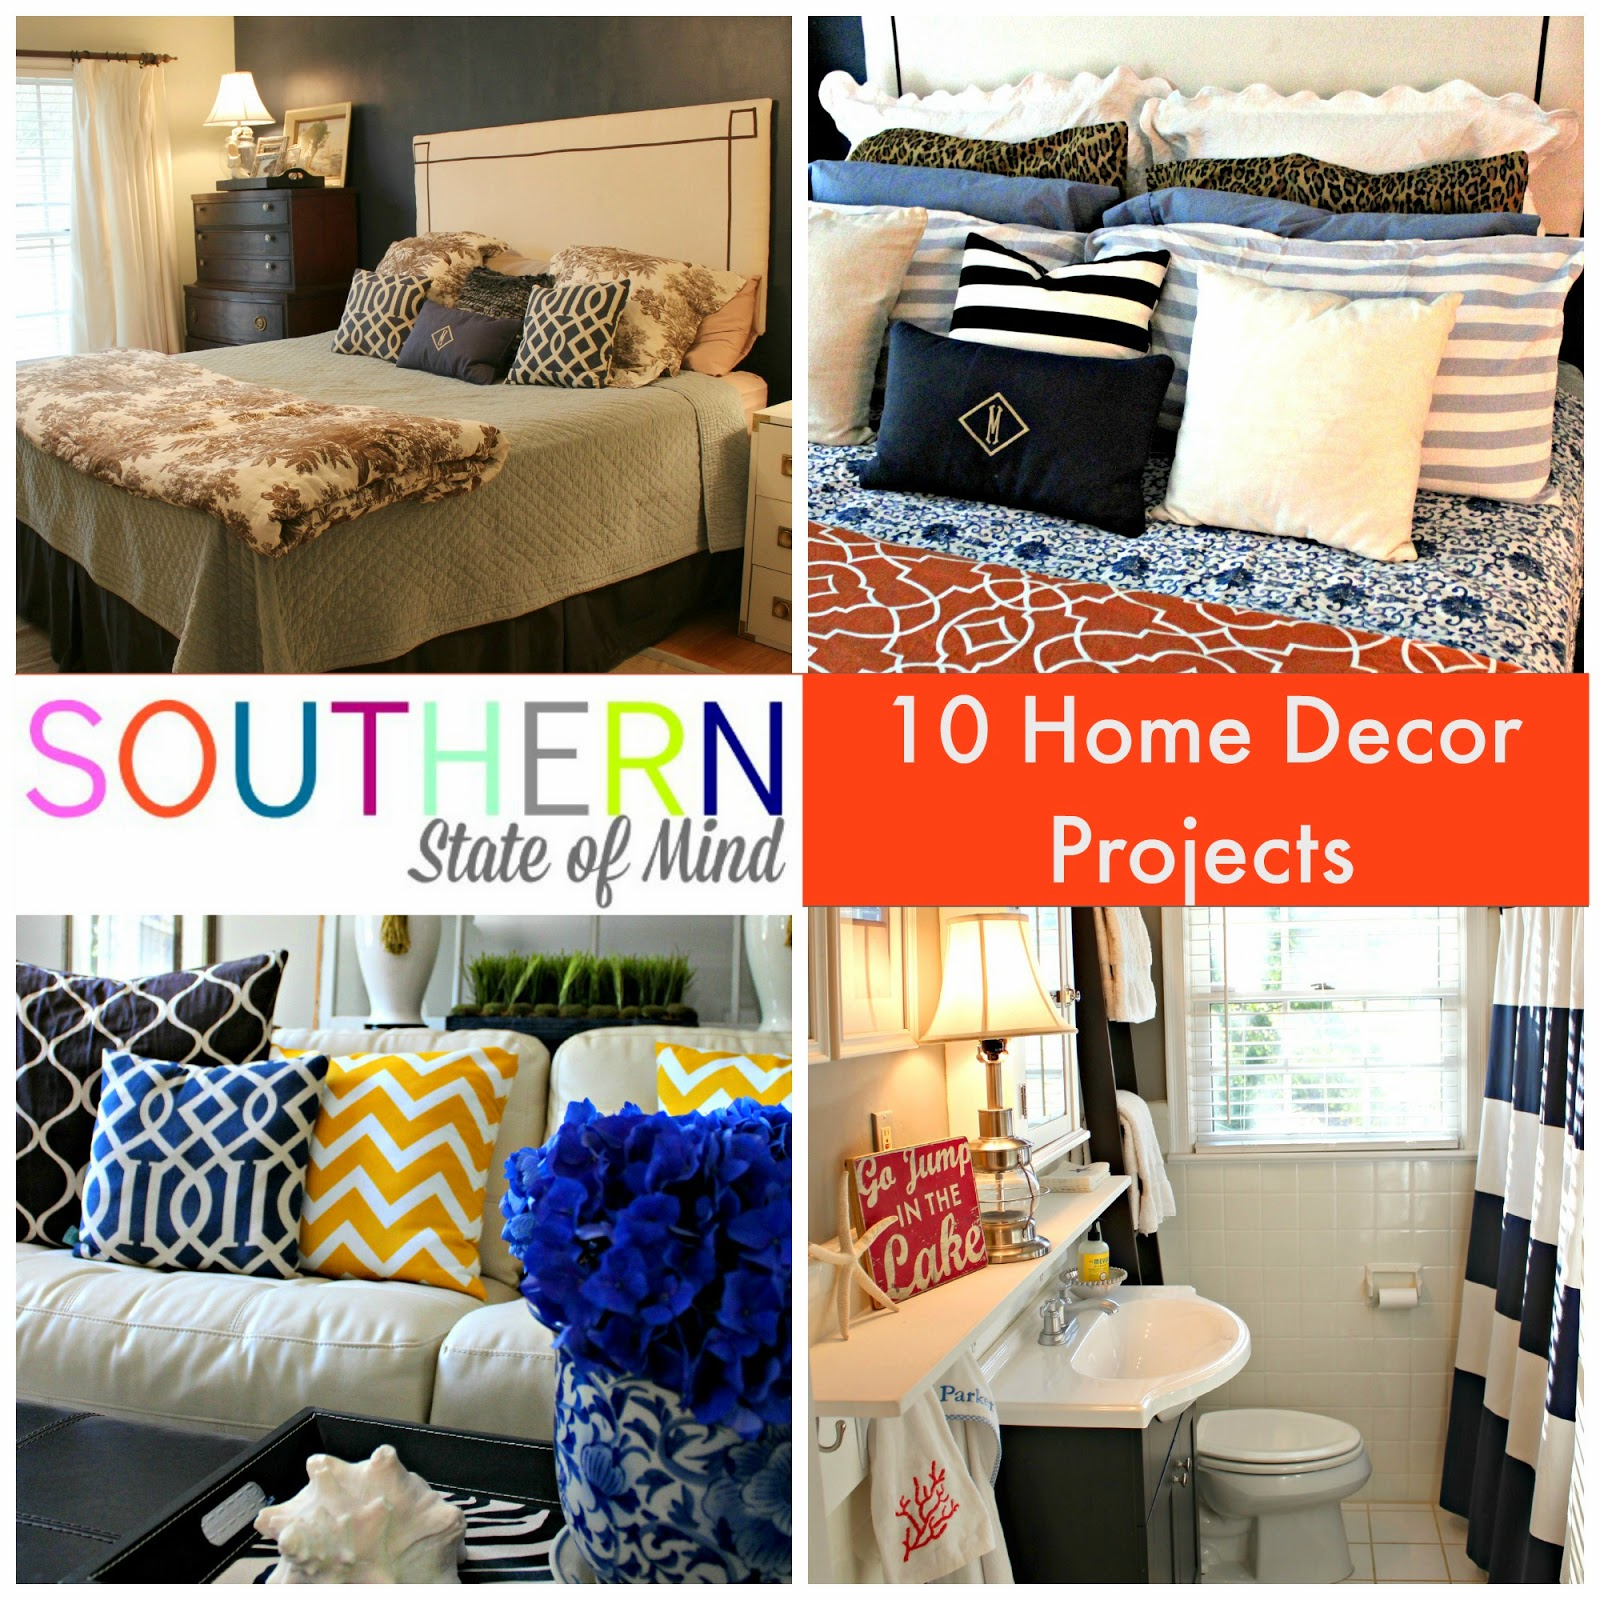 Southern State Of Mind Home Decor